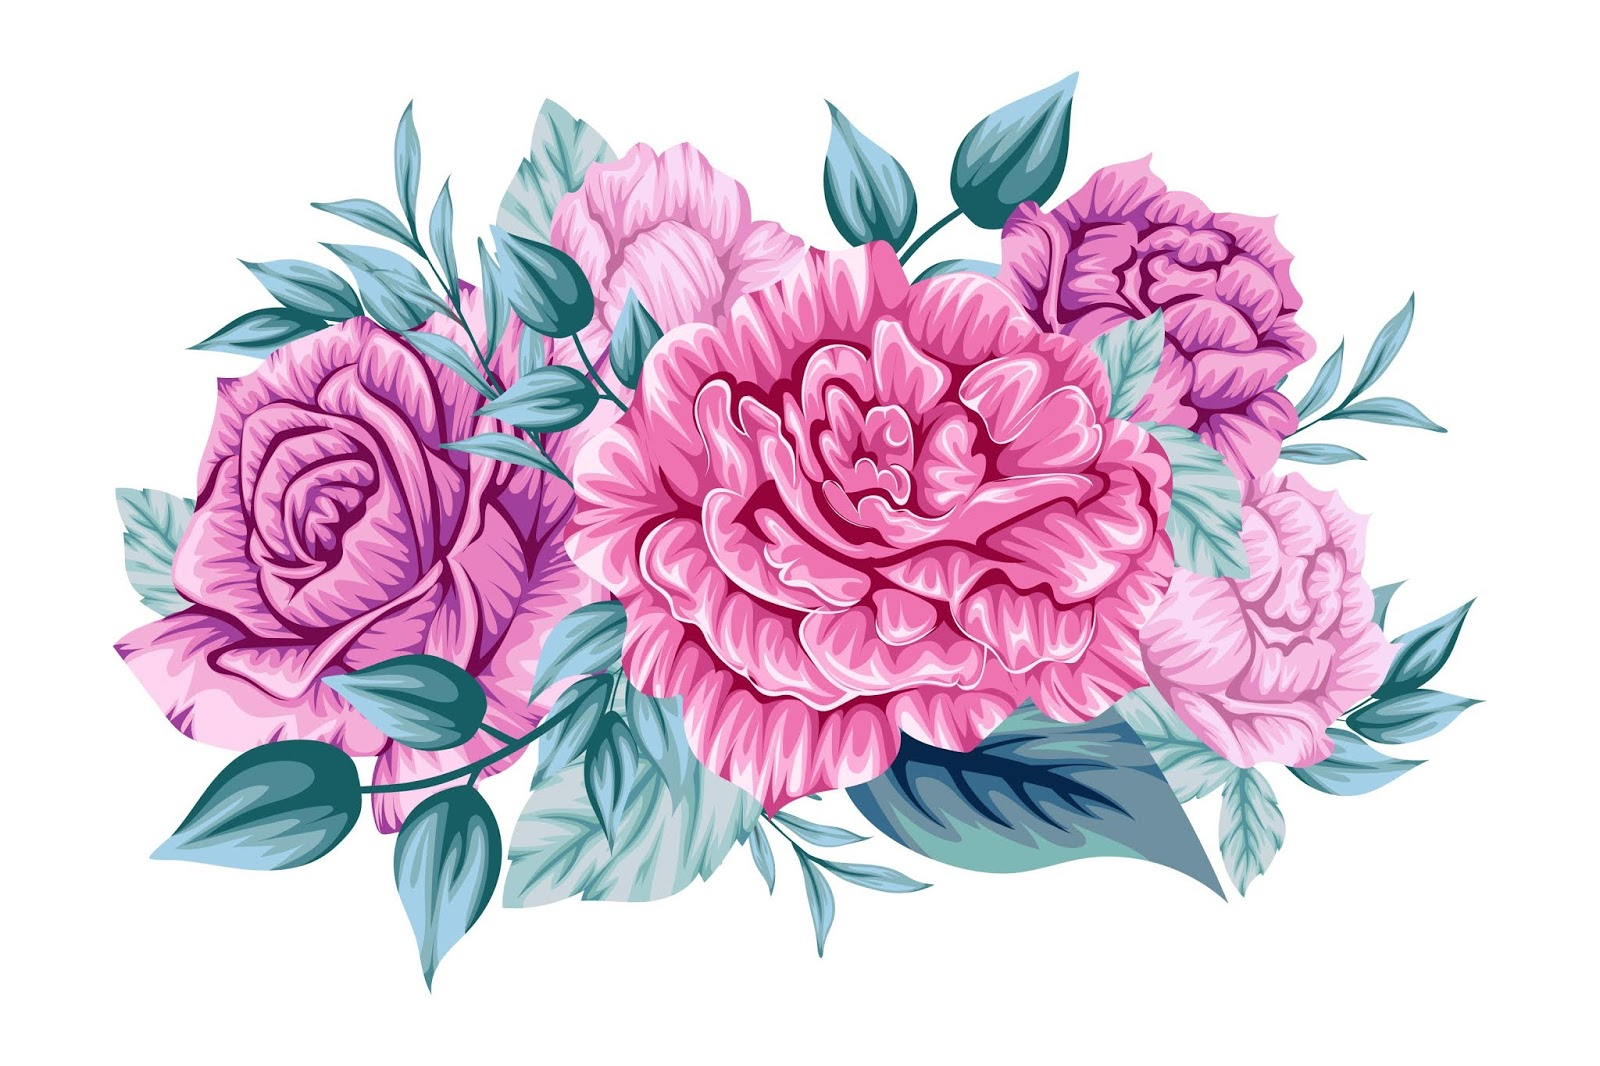 Beautiful Pink Bouquet Flowers Free Download Vector CDR, AI, EPS and PNG Formats